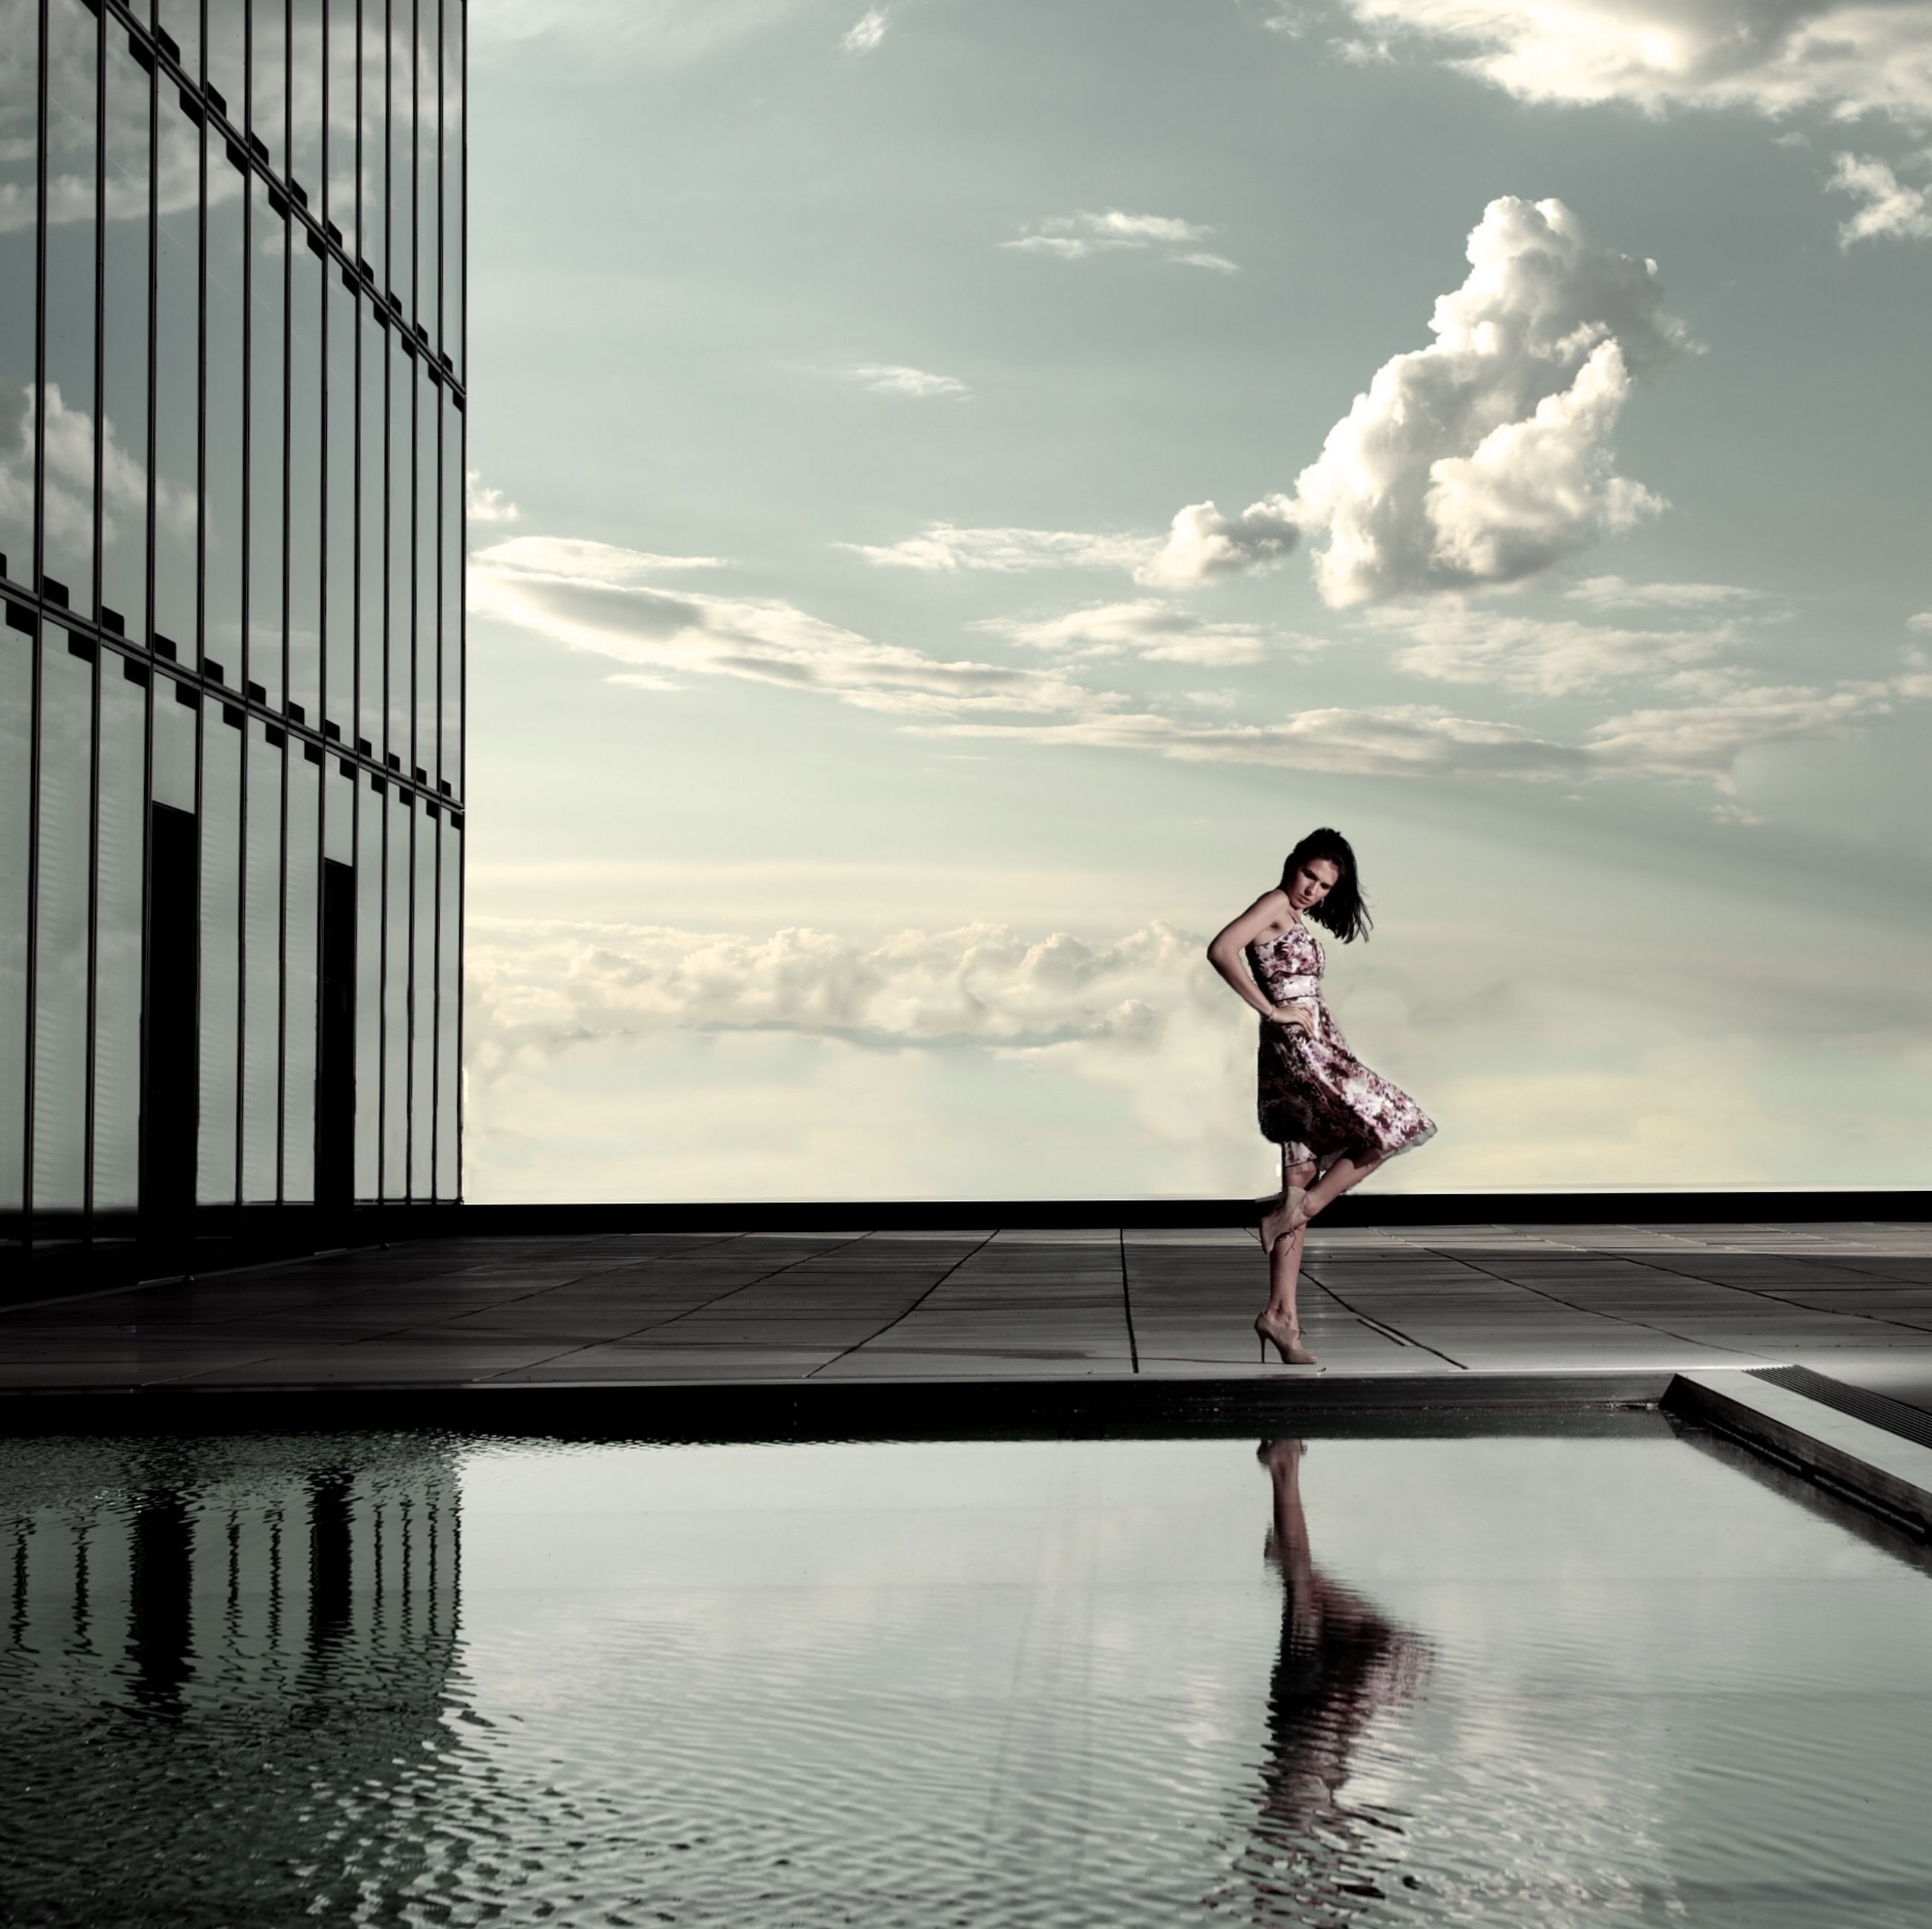 full length, lifestyles, leisure activity, young adult, sky, water, built structure, jumping, casual clothing, architecture, building exterior, standing, person, side view, cloud - sky, waterfront, young women, day